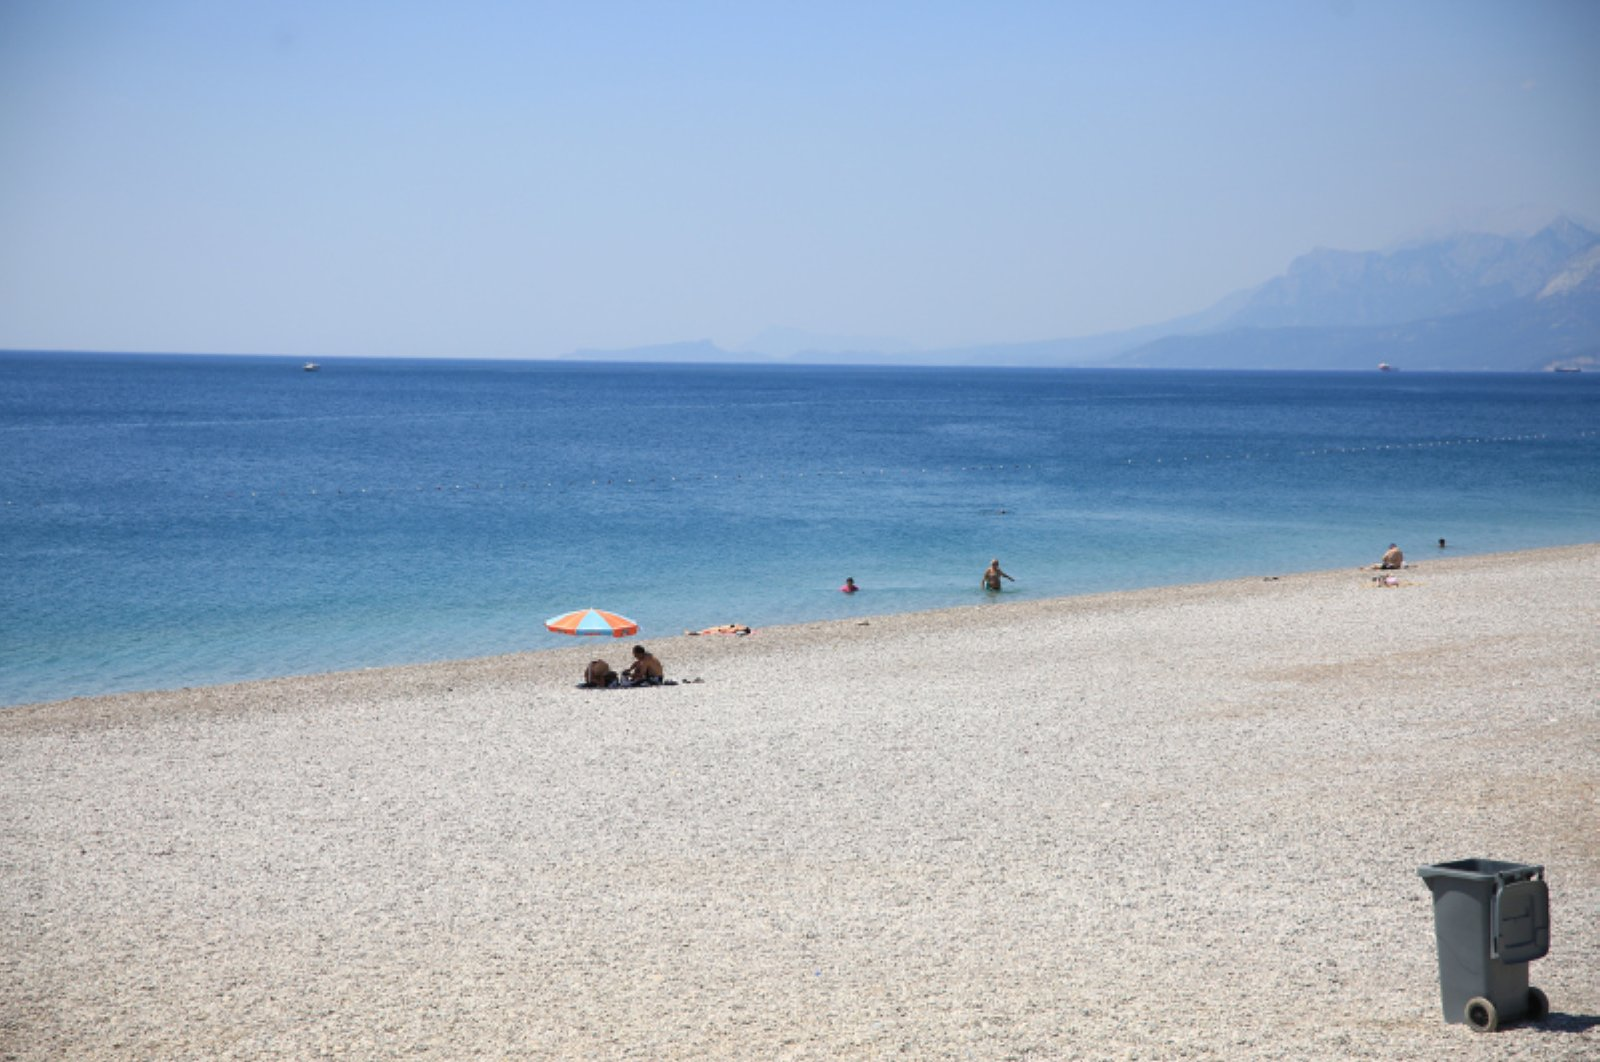 A beach looks deserted in southern Antalya province during the curfew implemented for the nationwide university entrance exams, June 27, 2020. (AA Photo)